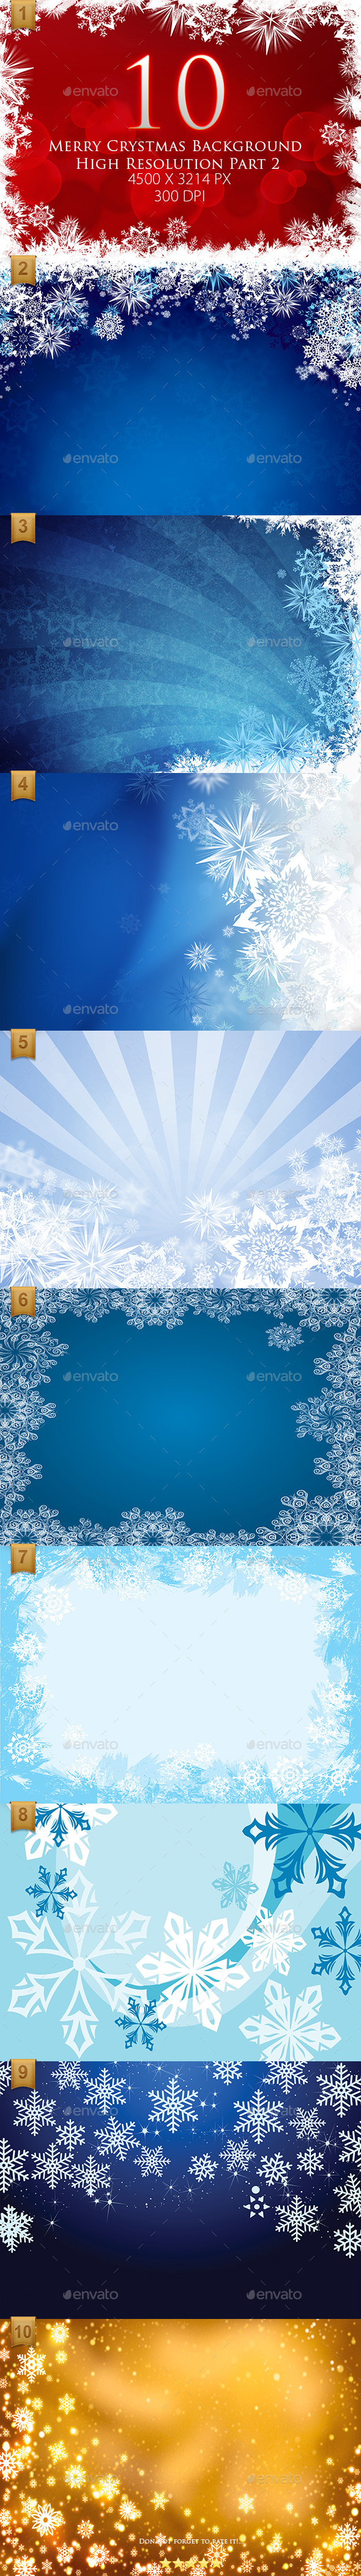 10 Merry Christmas Background High Resolution Part2 - Backgrounds Graphics